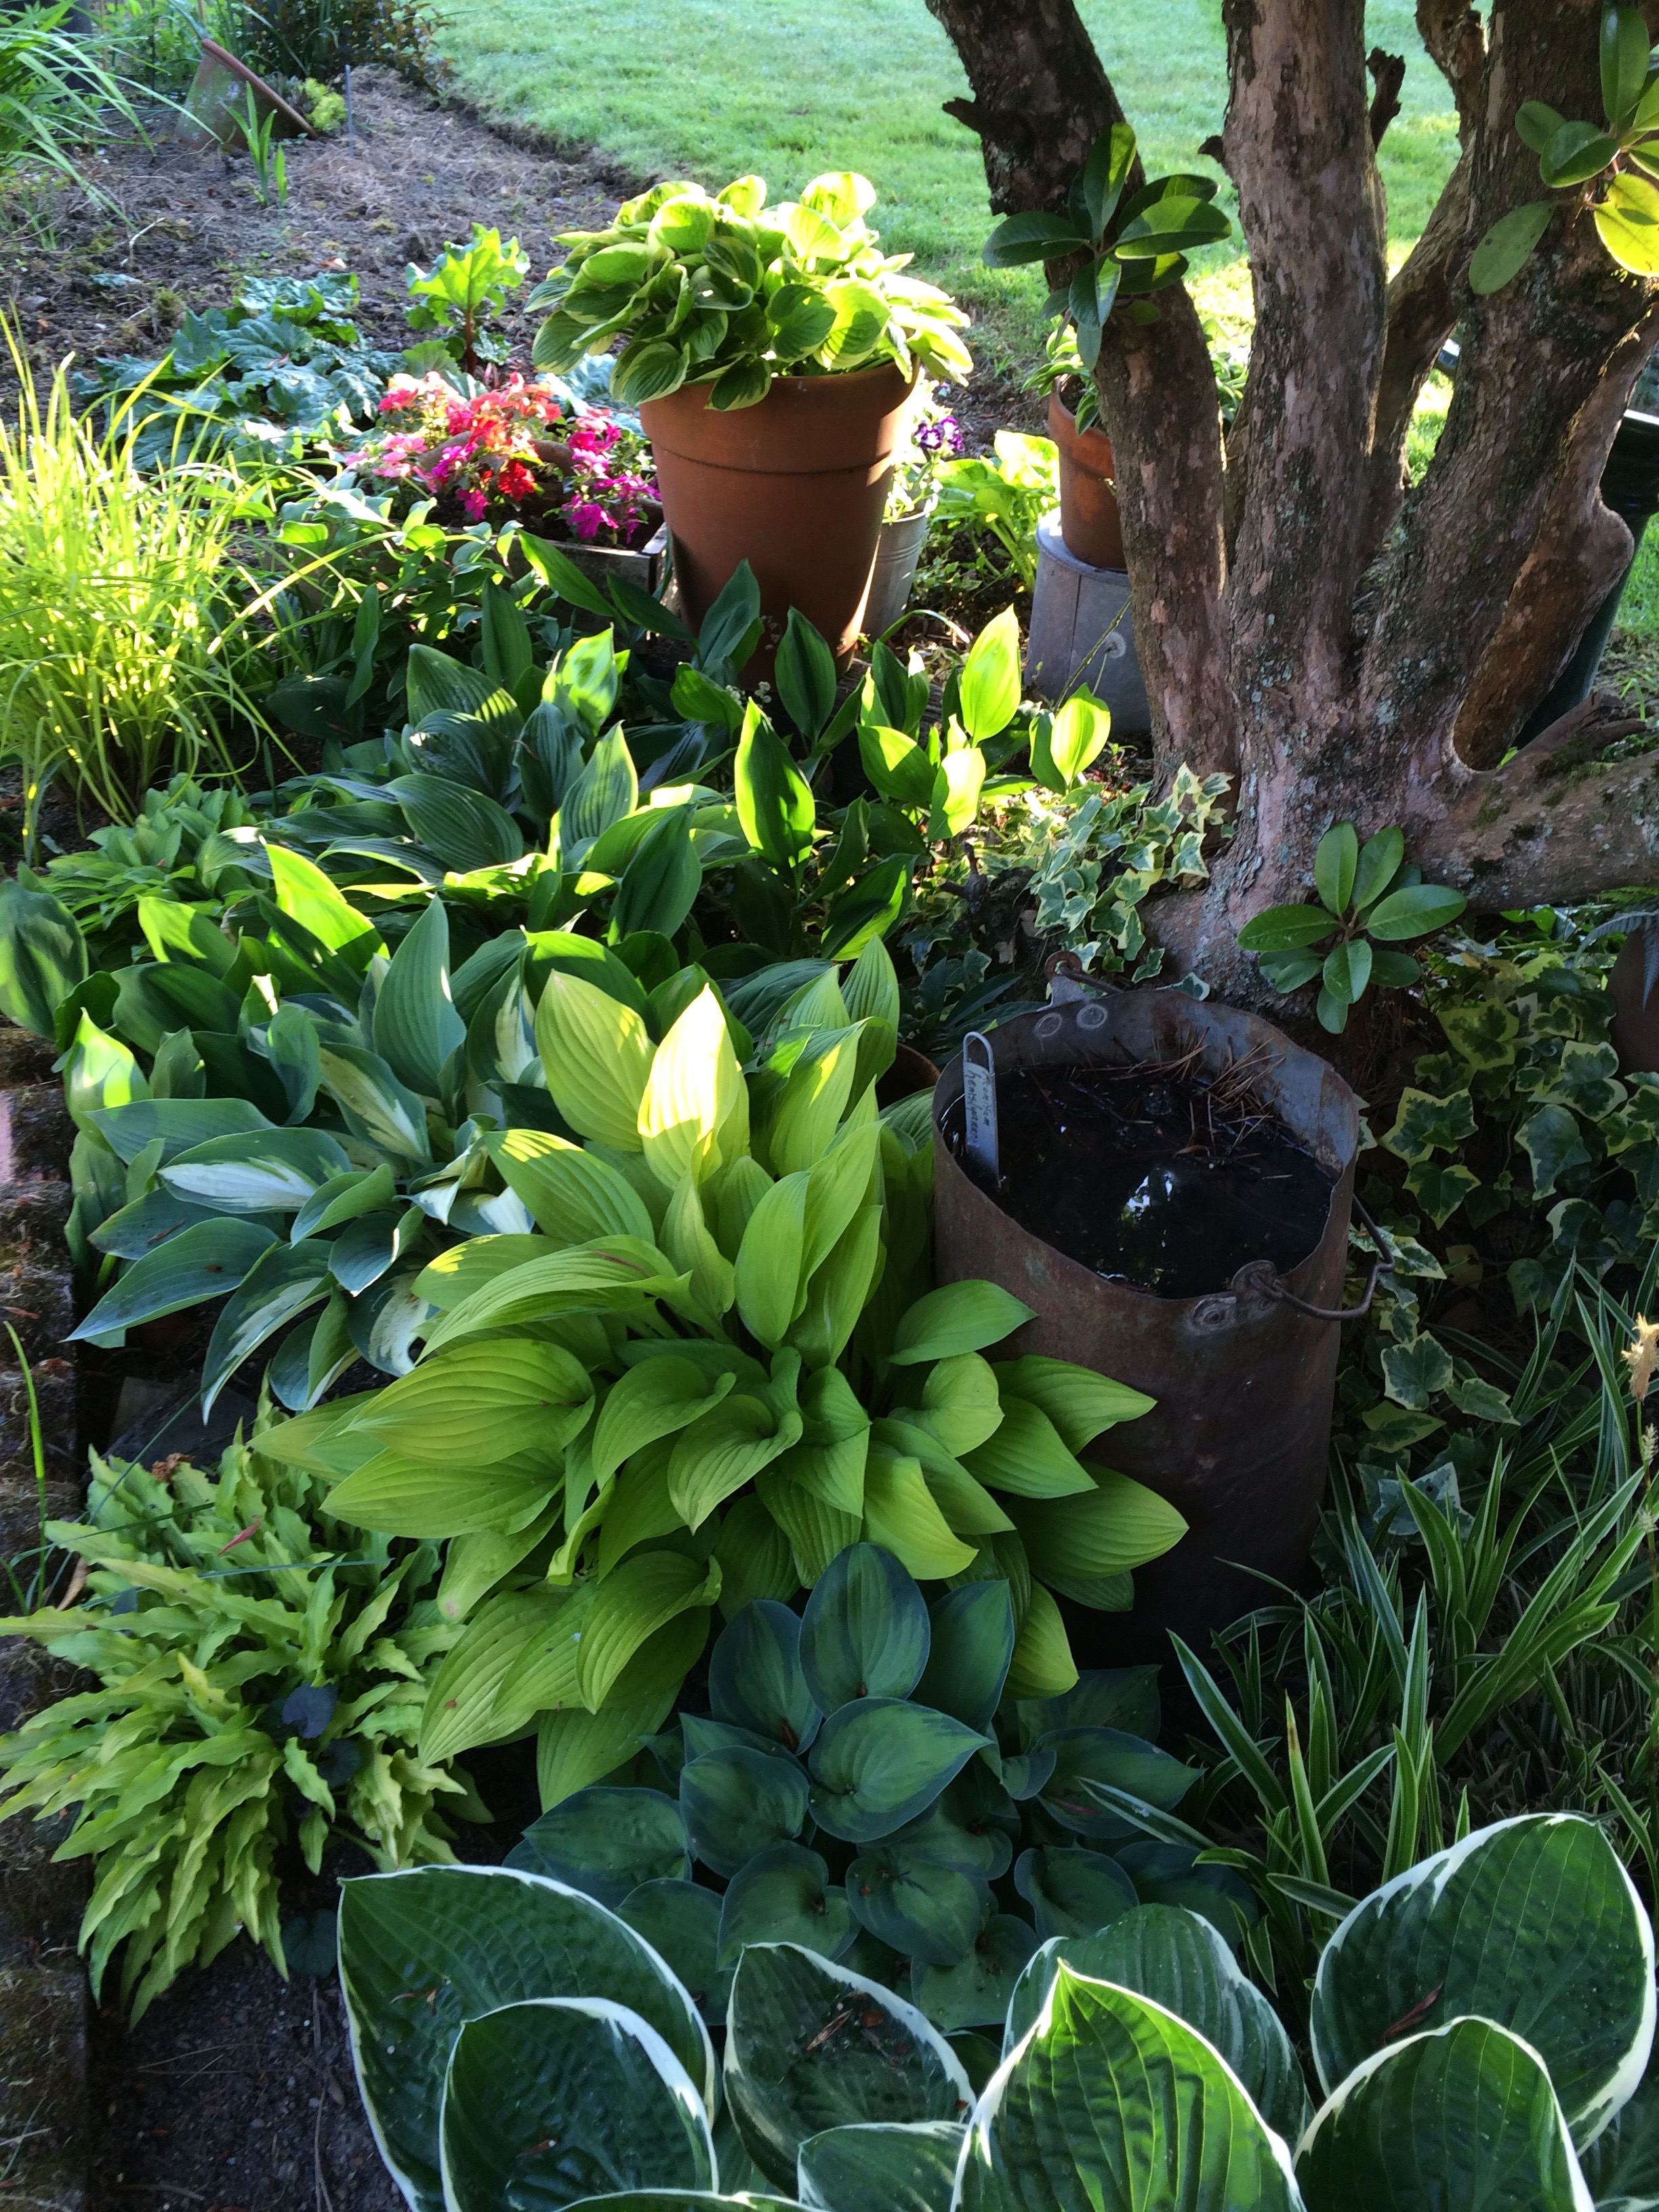 Growing Hosta From Seed And Book Review The Triumph Of Seeds By